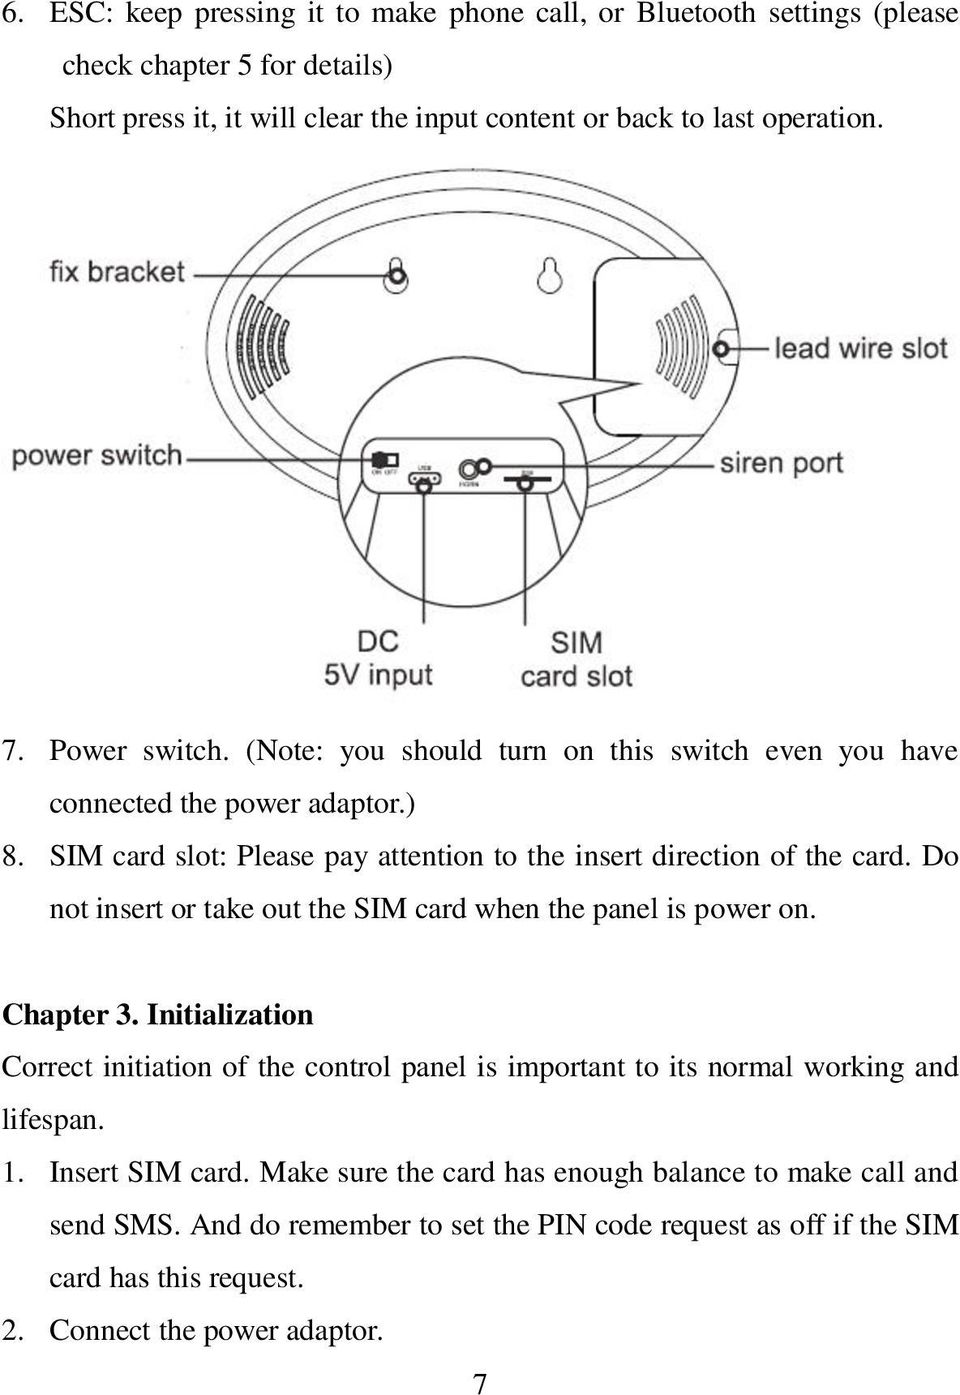 Do not insert or take out the SIM card when the panel is power on. Chapter 3. Initialization Correct initiation of the control panel is important to its normal working and lifespan. 1.